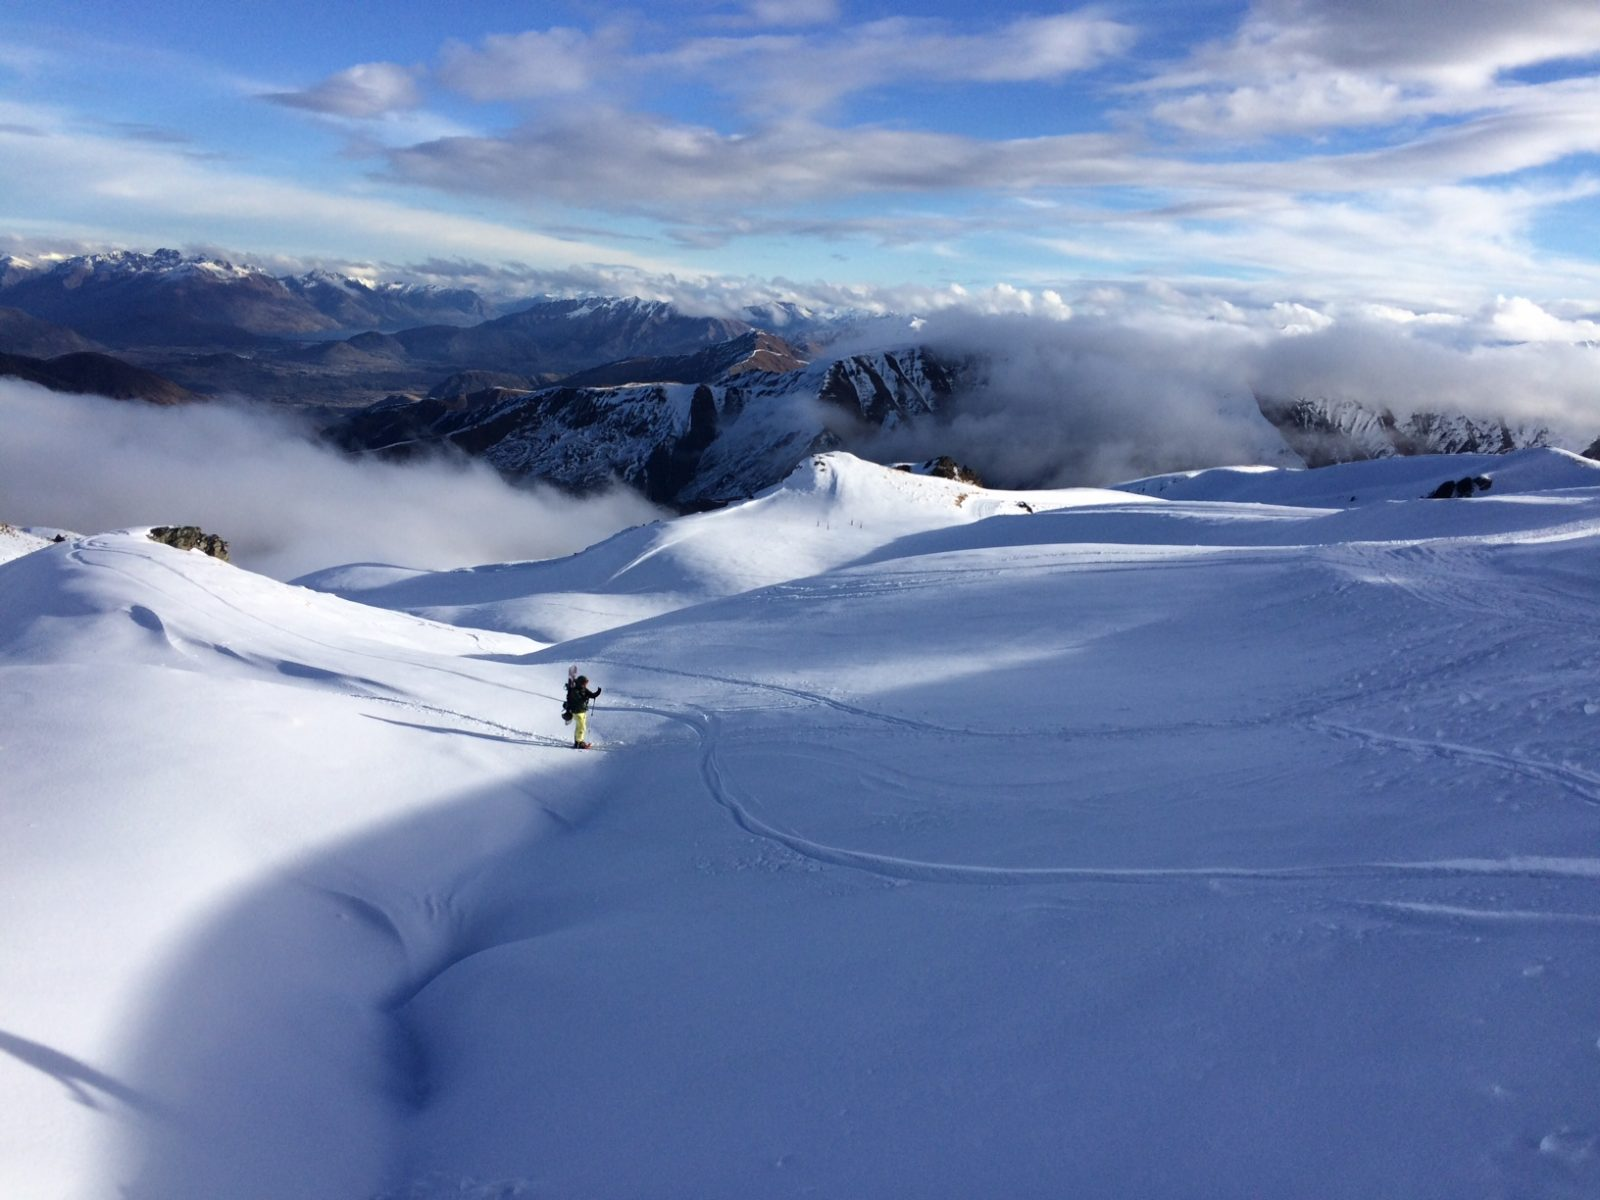 Guide Tarn Pilkington exploring the backcountry on a recent powder day.